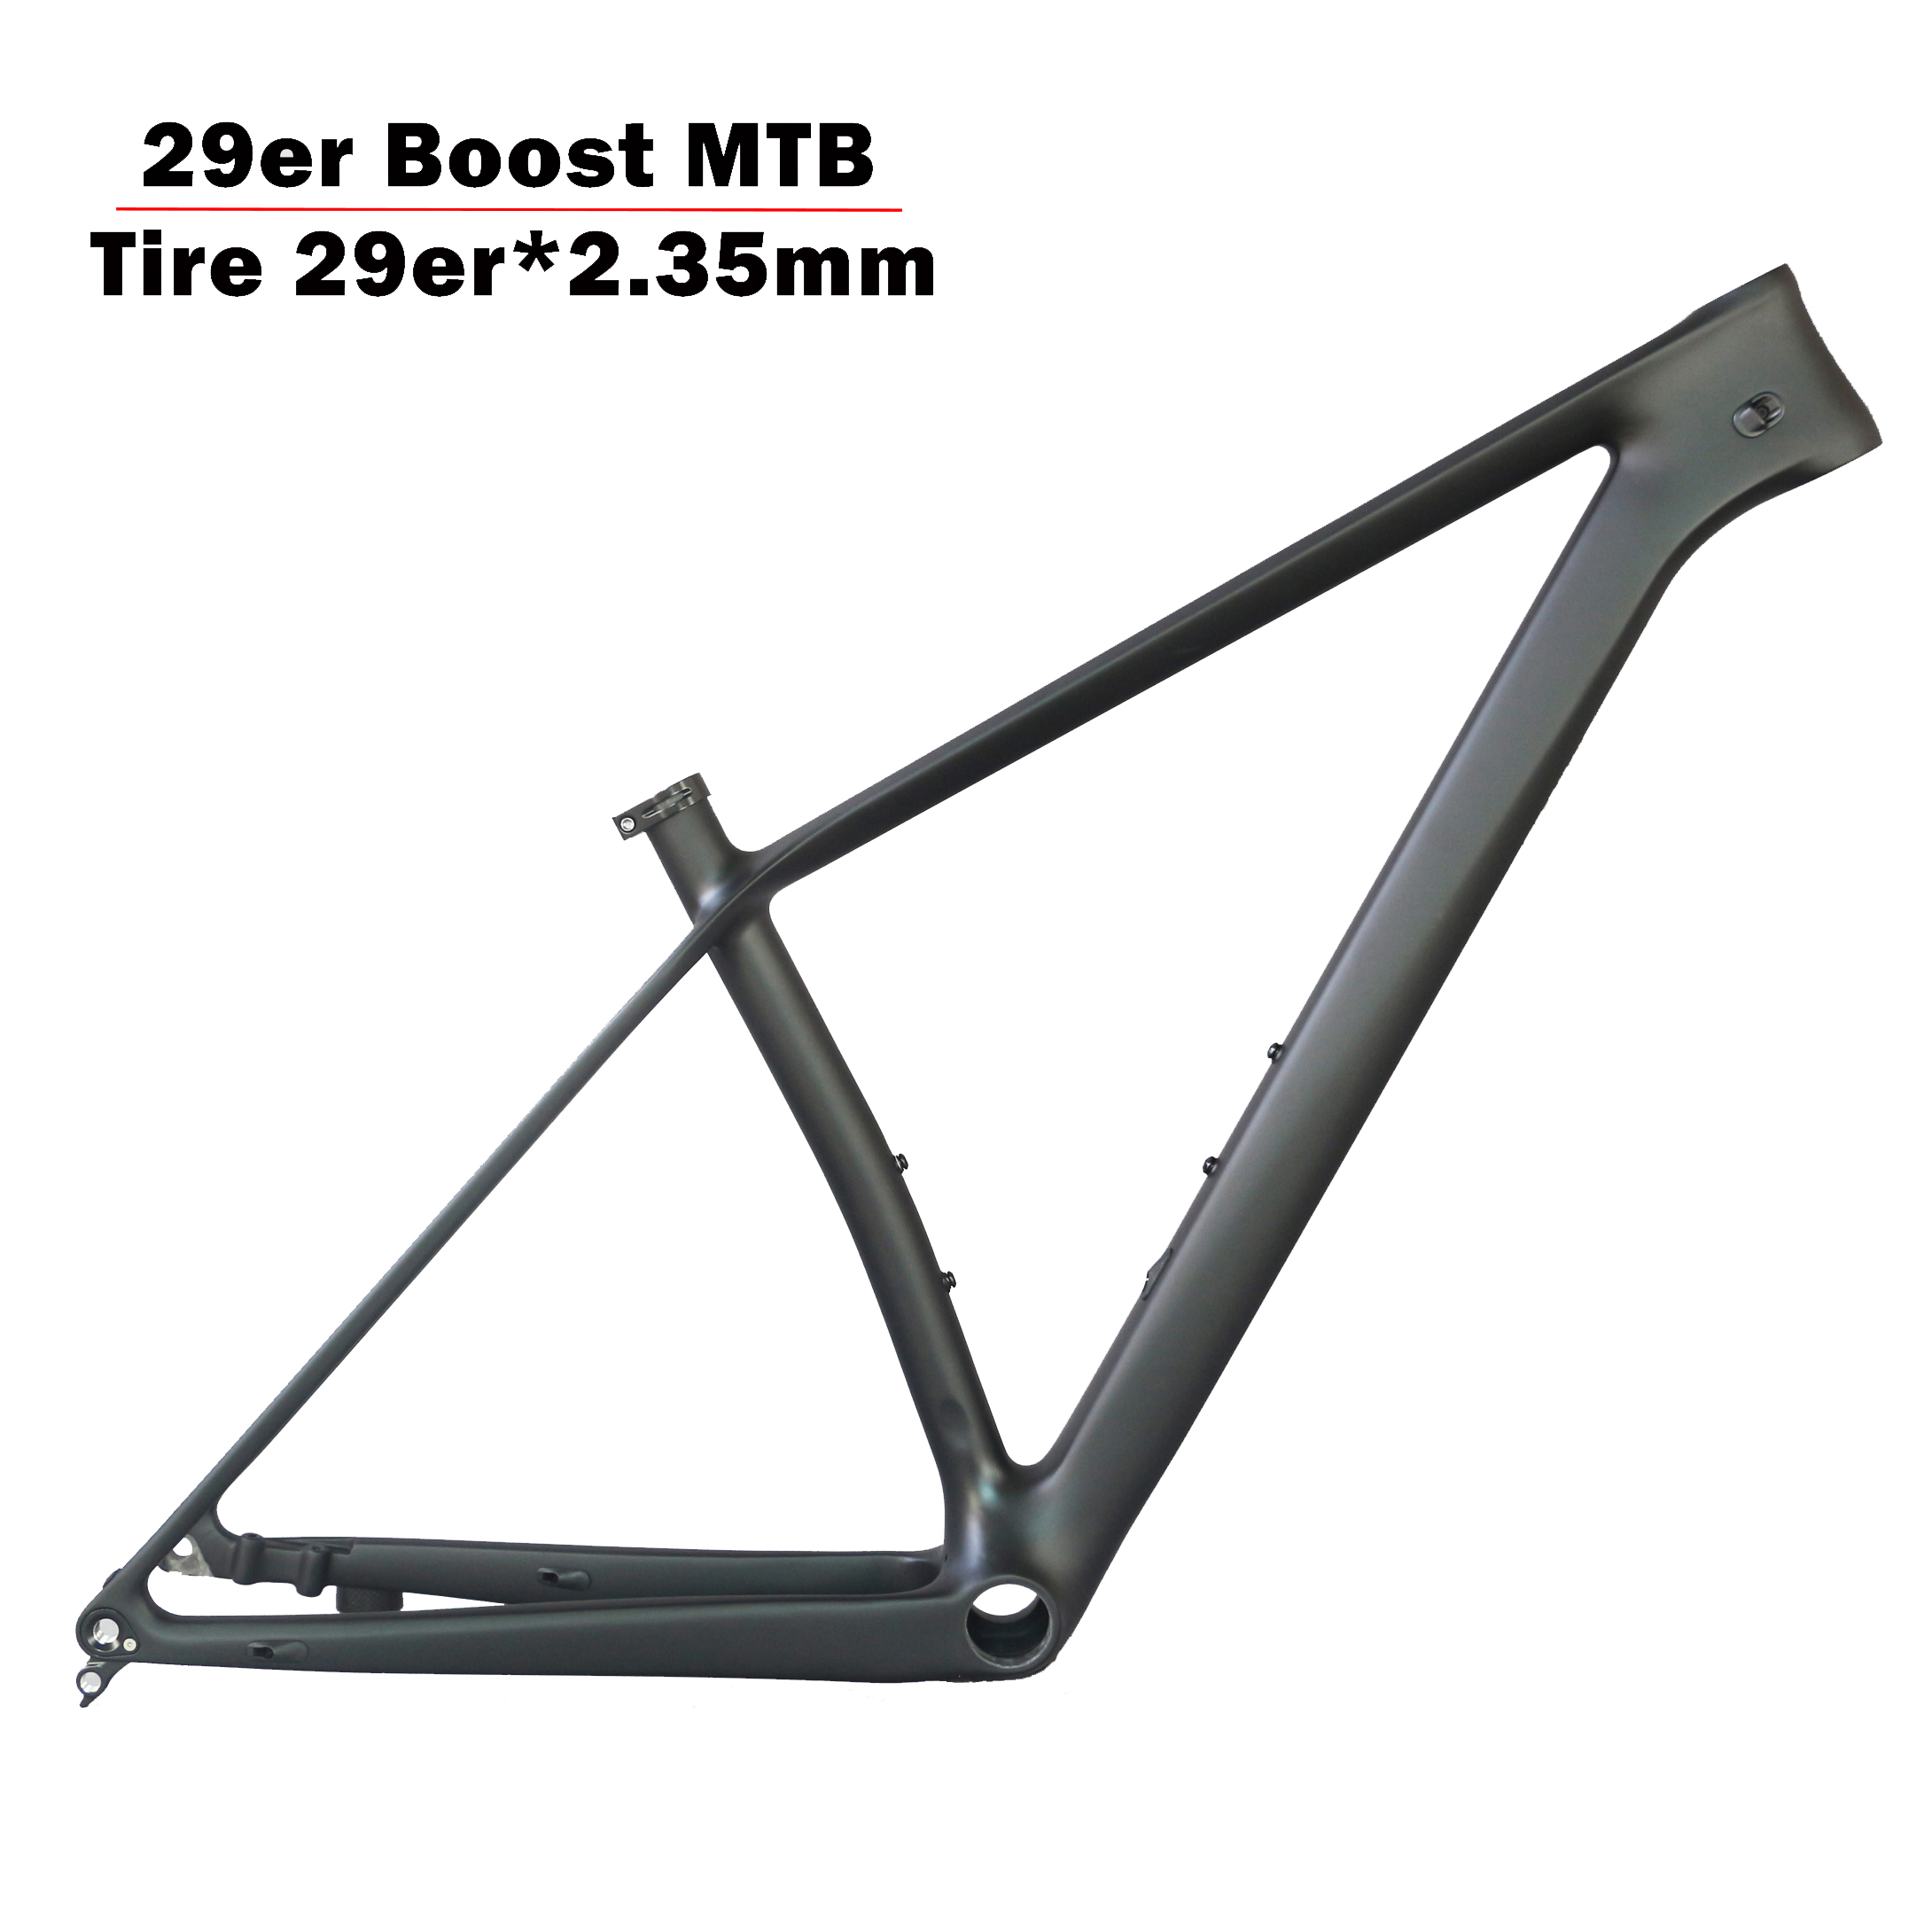 2019 Super Light FM199 Carbon Mountain Bicycle Frame 29er Boost 29er Plus  BB92 With 29er*2.35 Tire